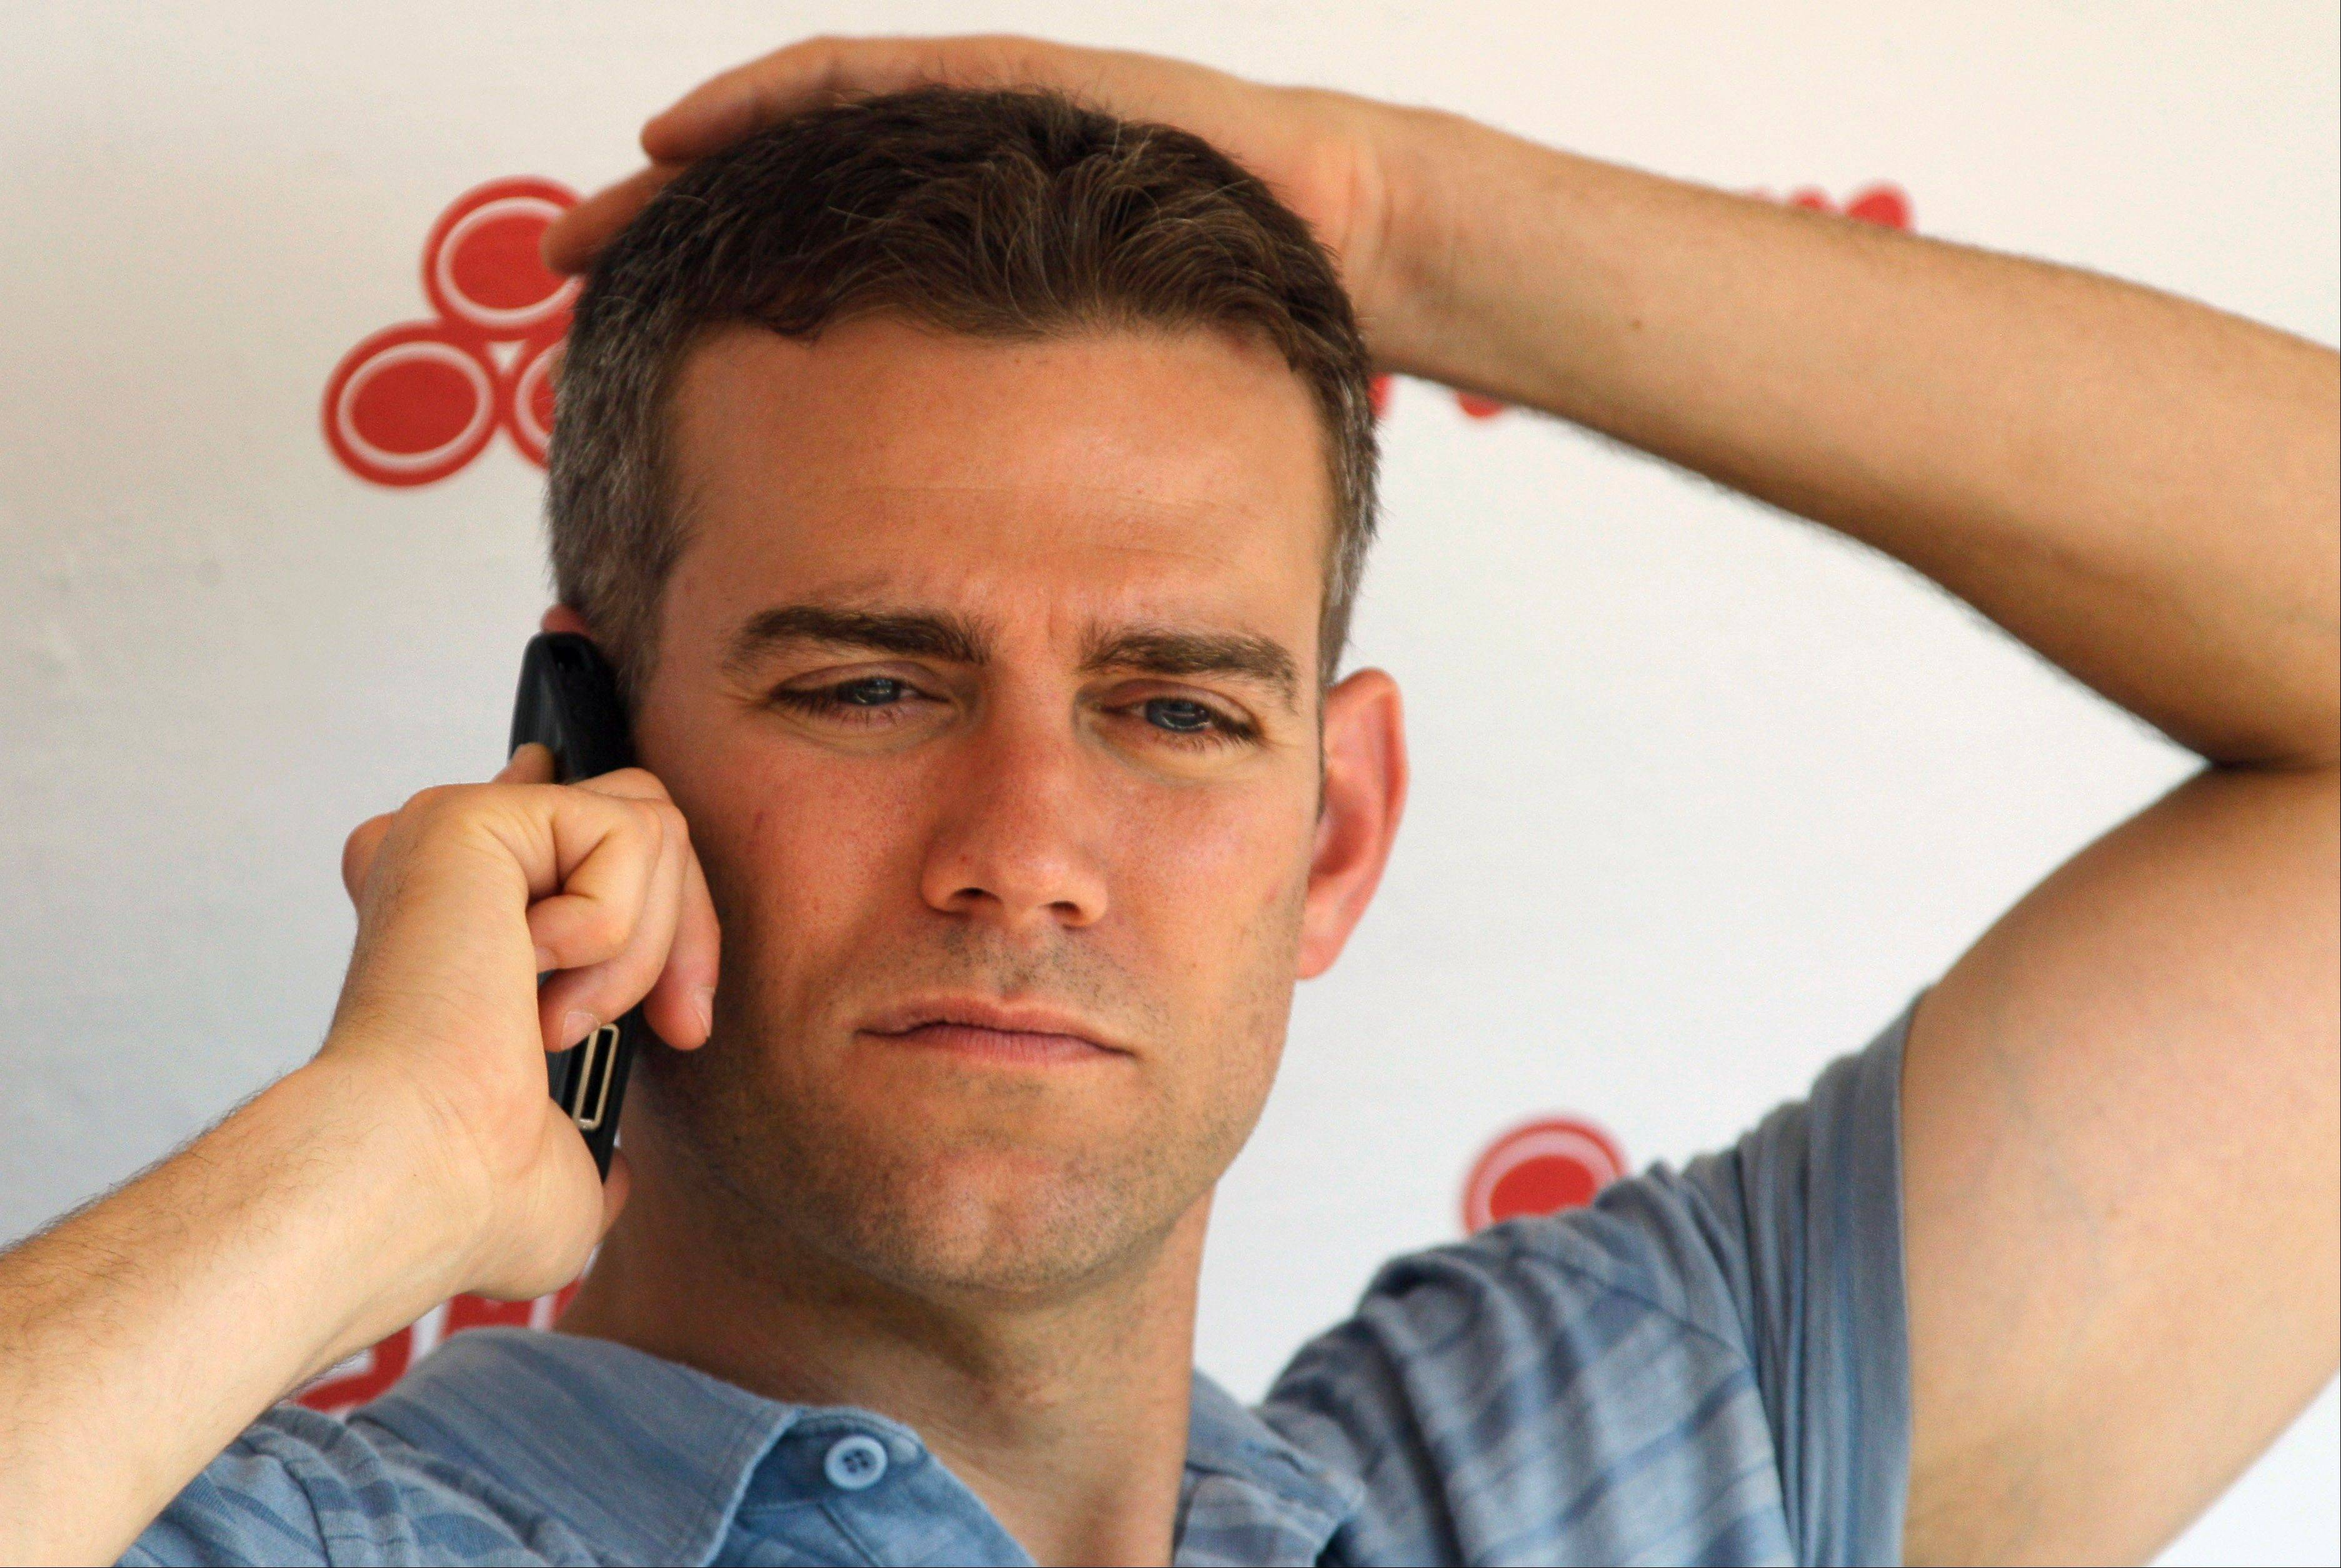 Maybe Cubs President Theo Epstein should consider taking a pay cut too while the team rebuilds itself into a contender.